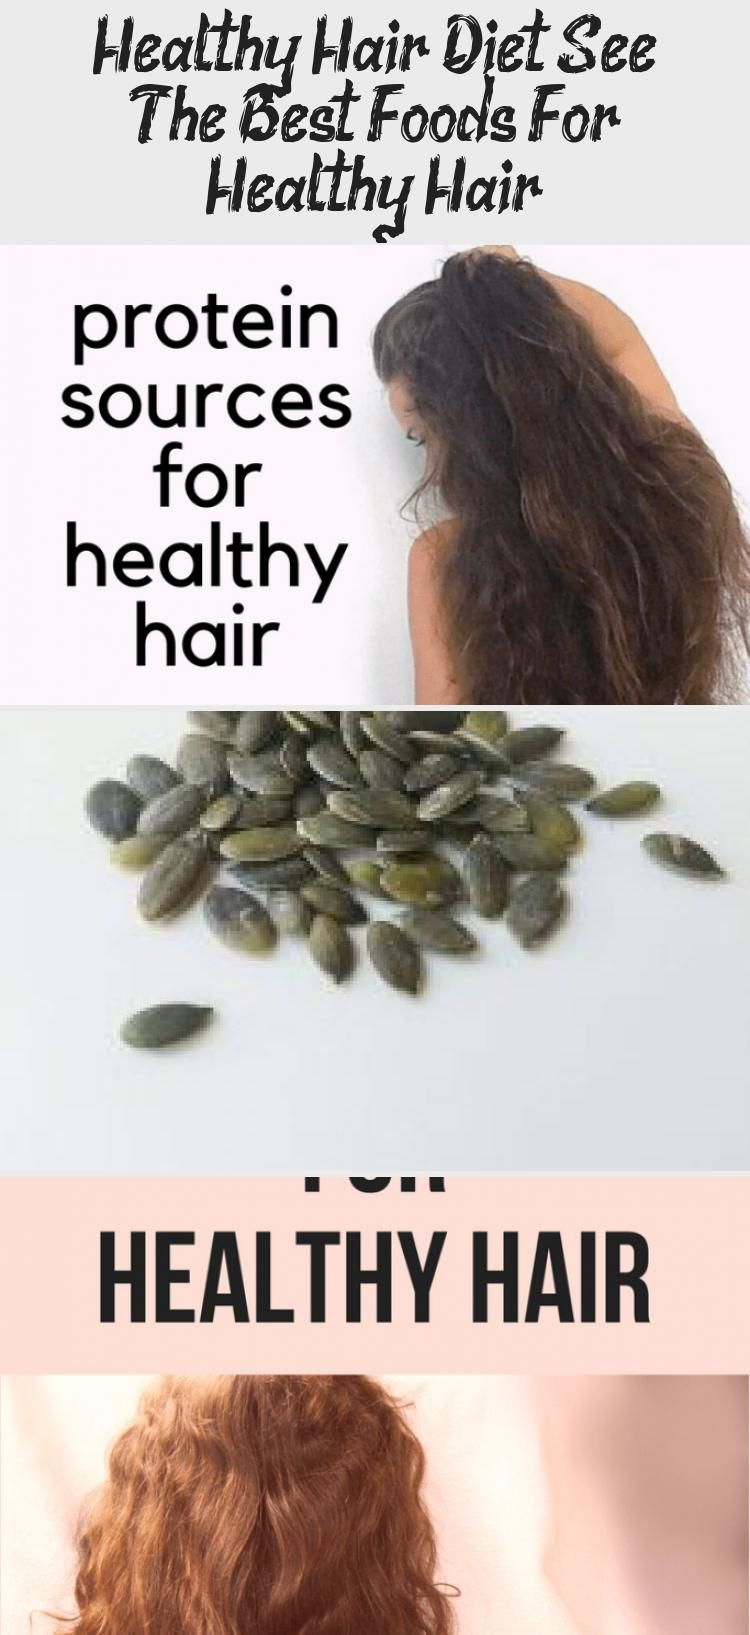 A healthy diet is necessary for speedy hair growth. Find out here which foods to eat to grow strong and healthy hair! #hairgrowthSnapchat #Stimulatehairgrowth #hairgrowthSupplement #Eyebrowhairgrowth #hairgrowthDIY #fasterhairgrowth